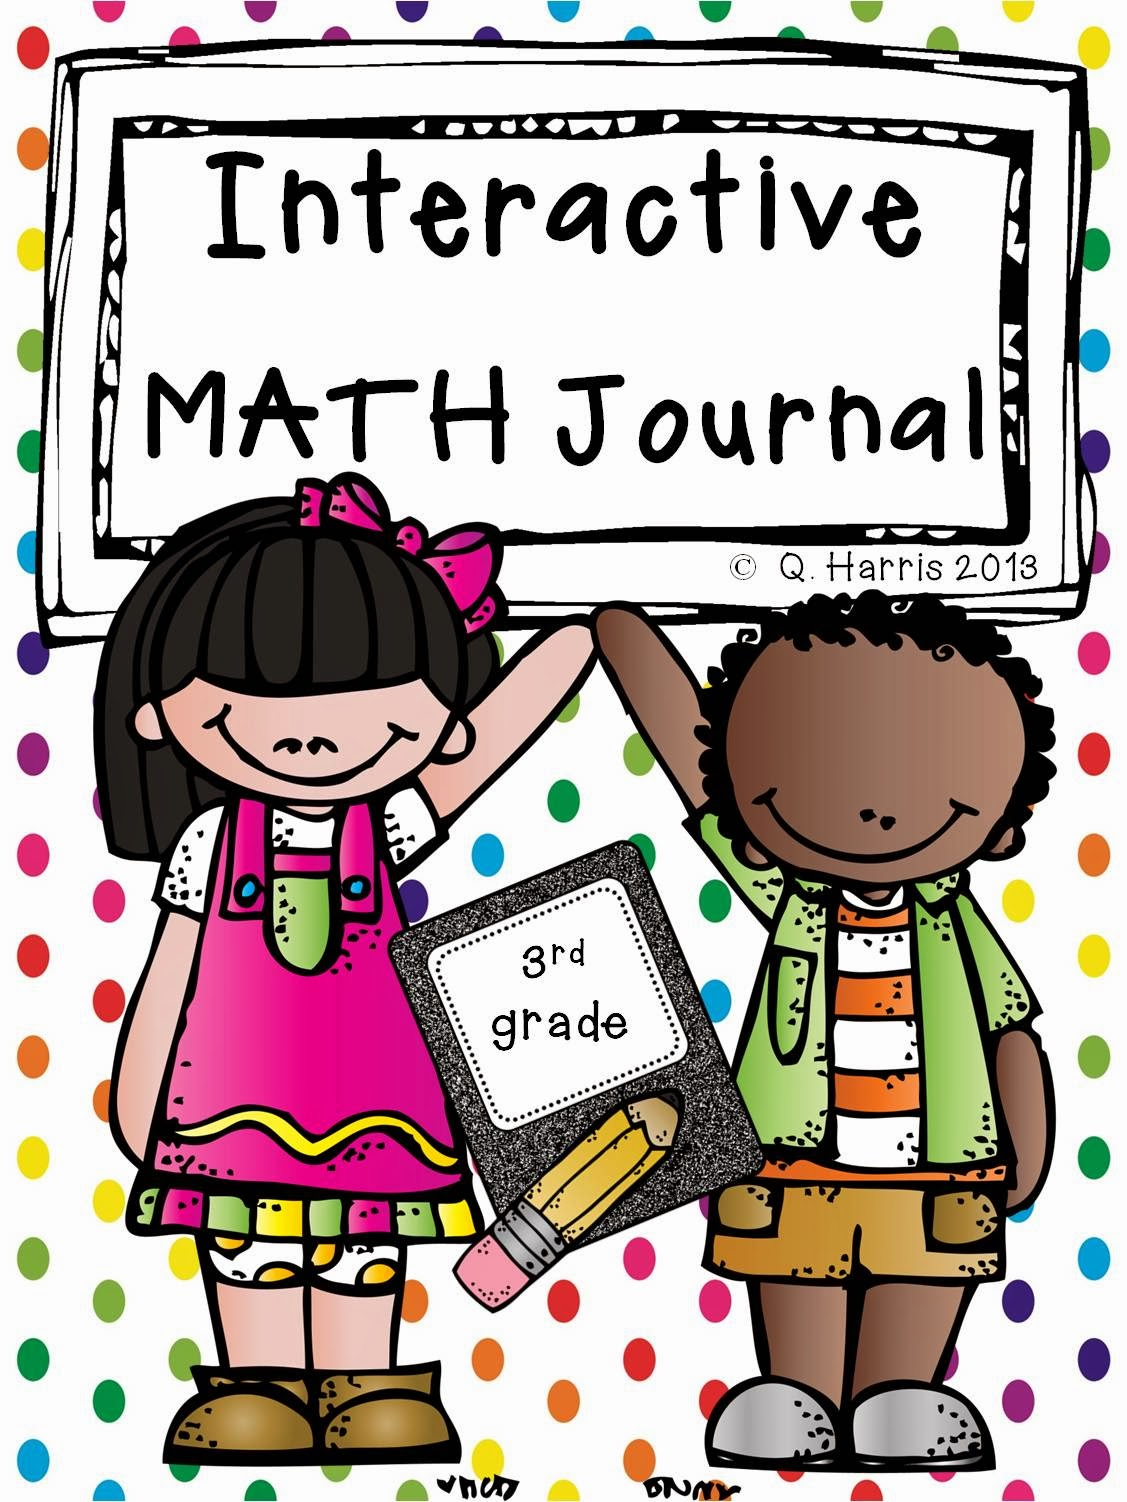 http://www.teacherspayteachers.com/Product/Interactive-Math-Journal-3rd-grade-1072648